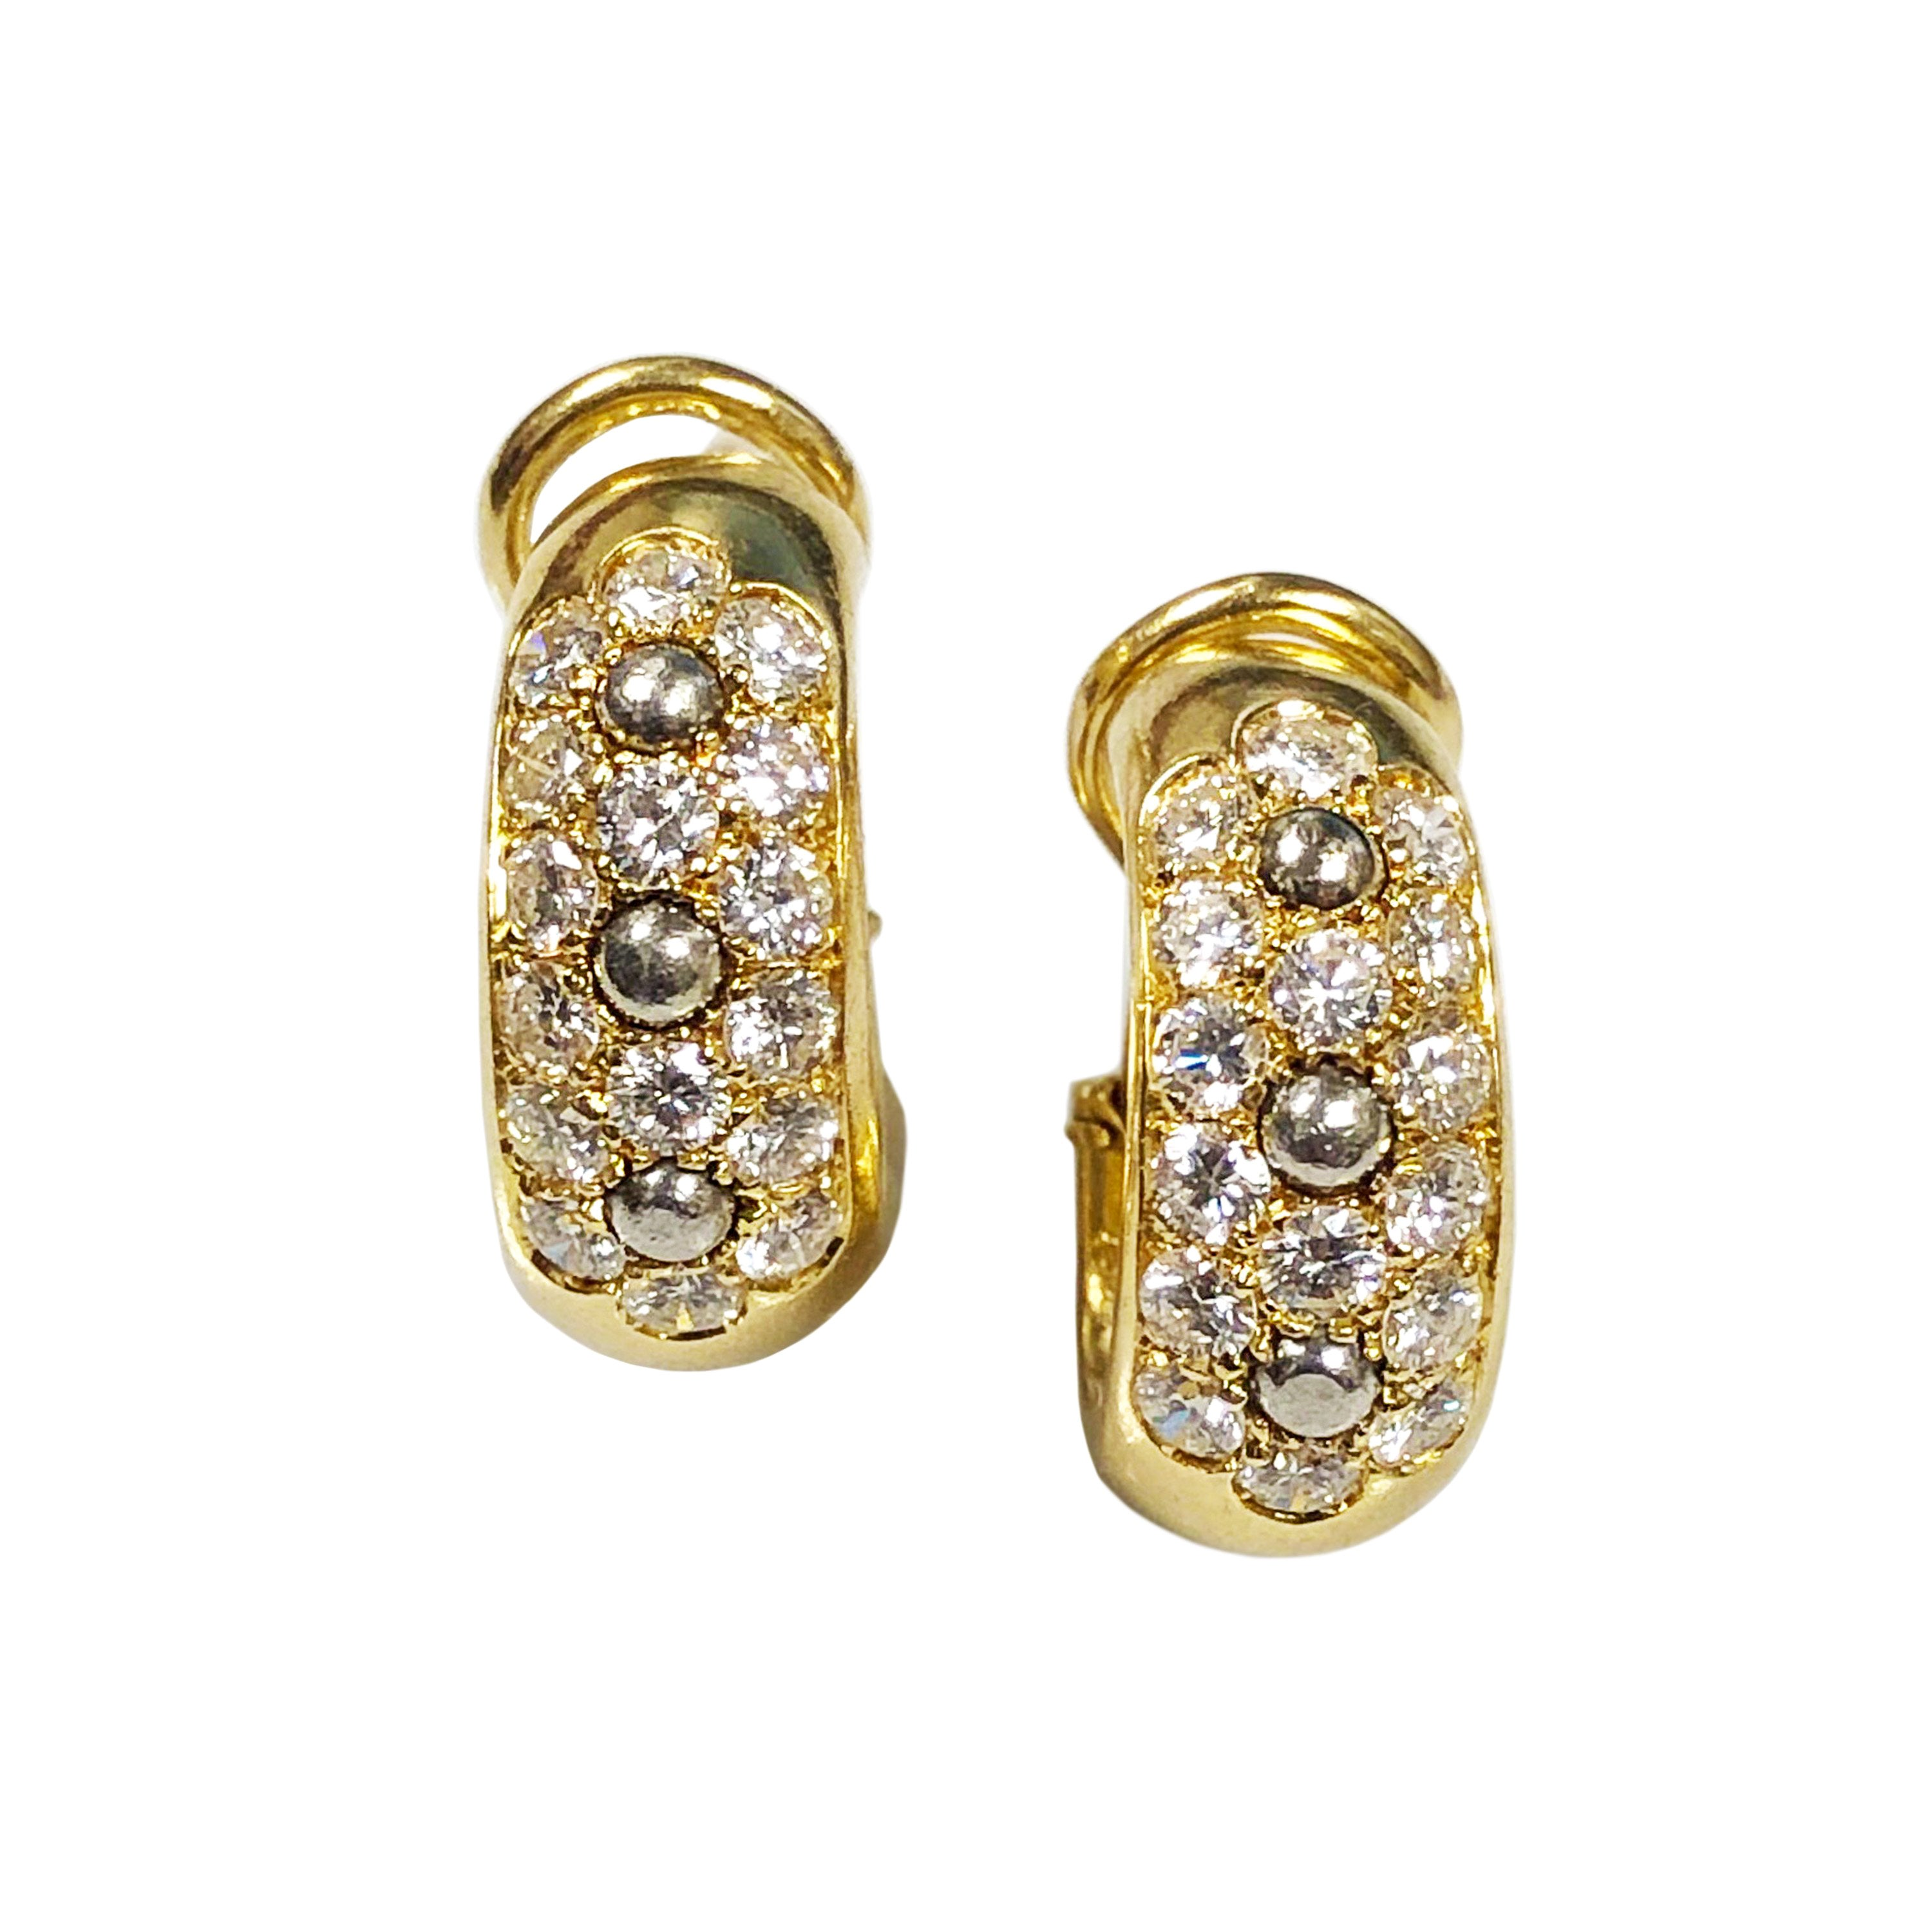 Cartier Yellow Gold and Diamond Hoop Earrings